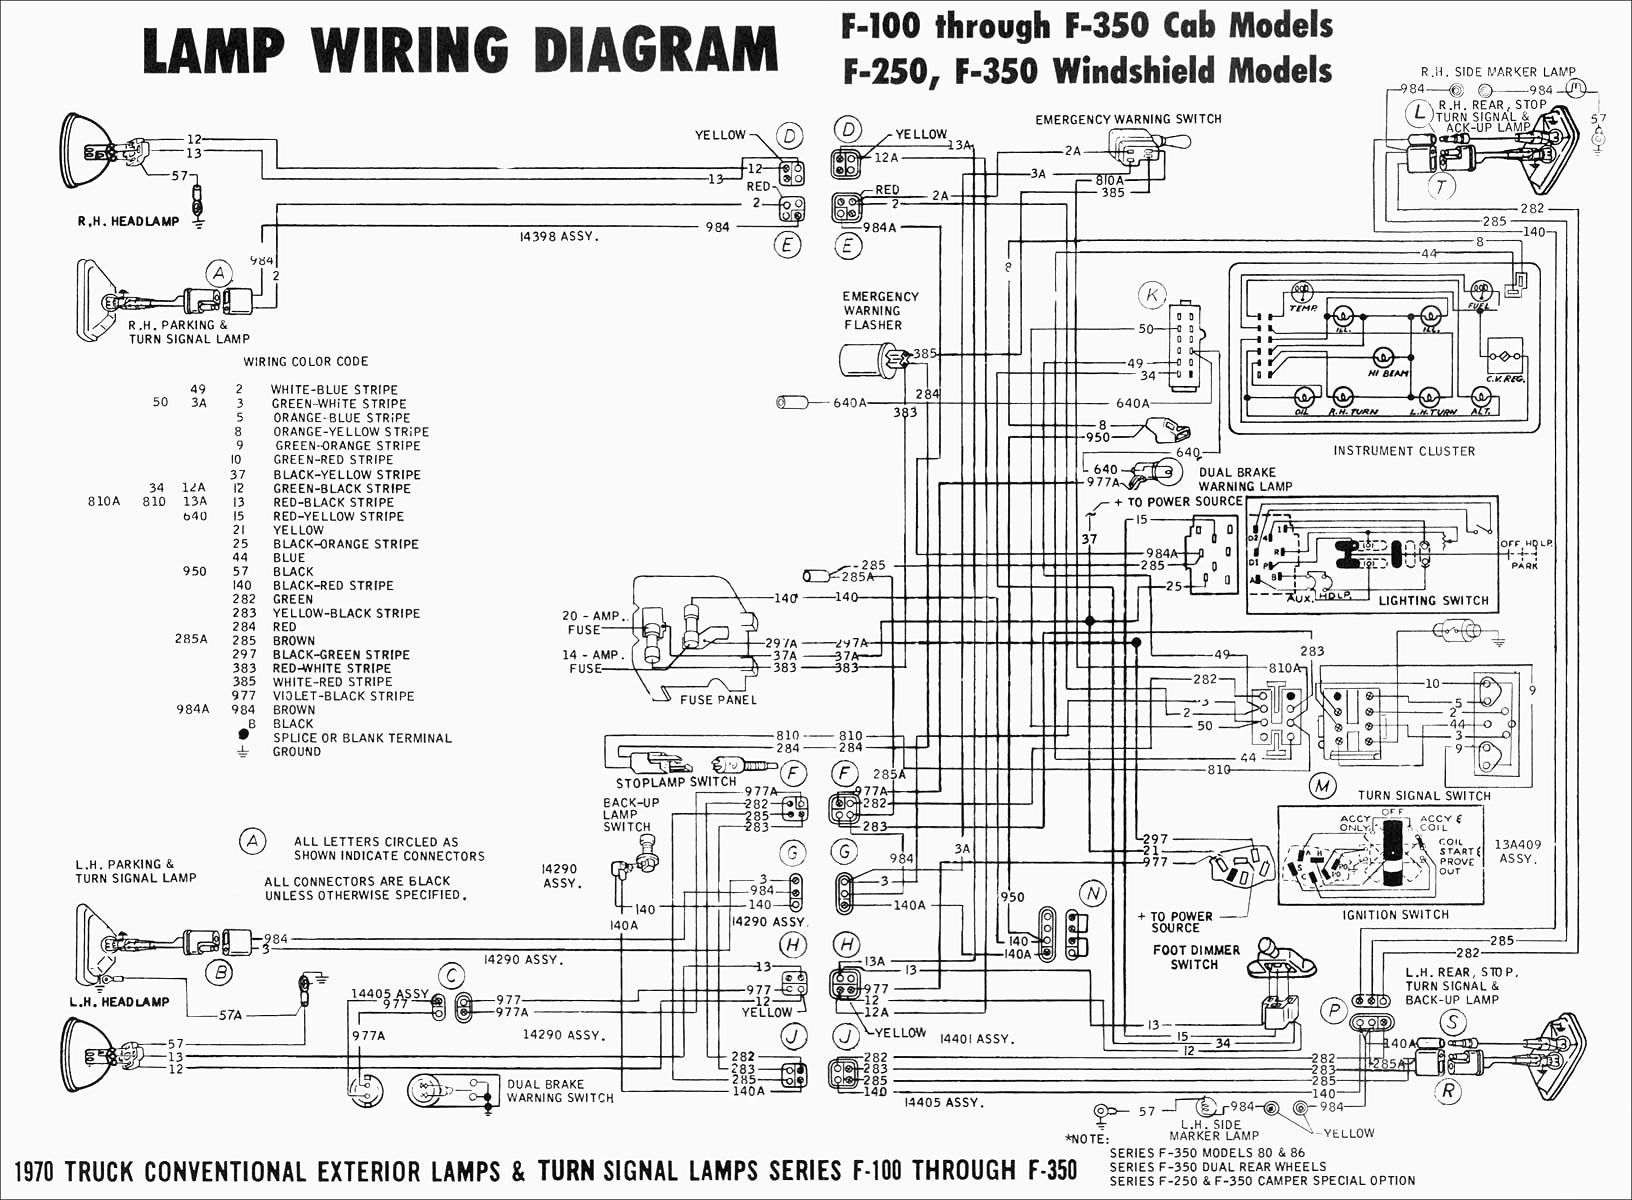 Amp Research Power Step Wiring Diagram Trailer Wiring Diagram Electrical Wiring Diagram Circuit Diagram